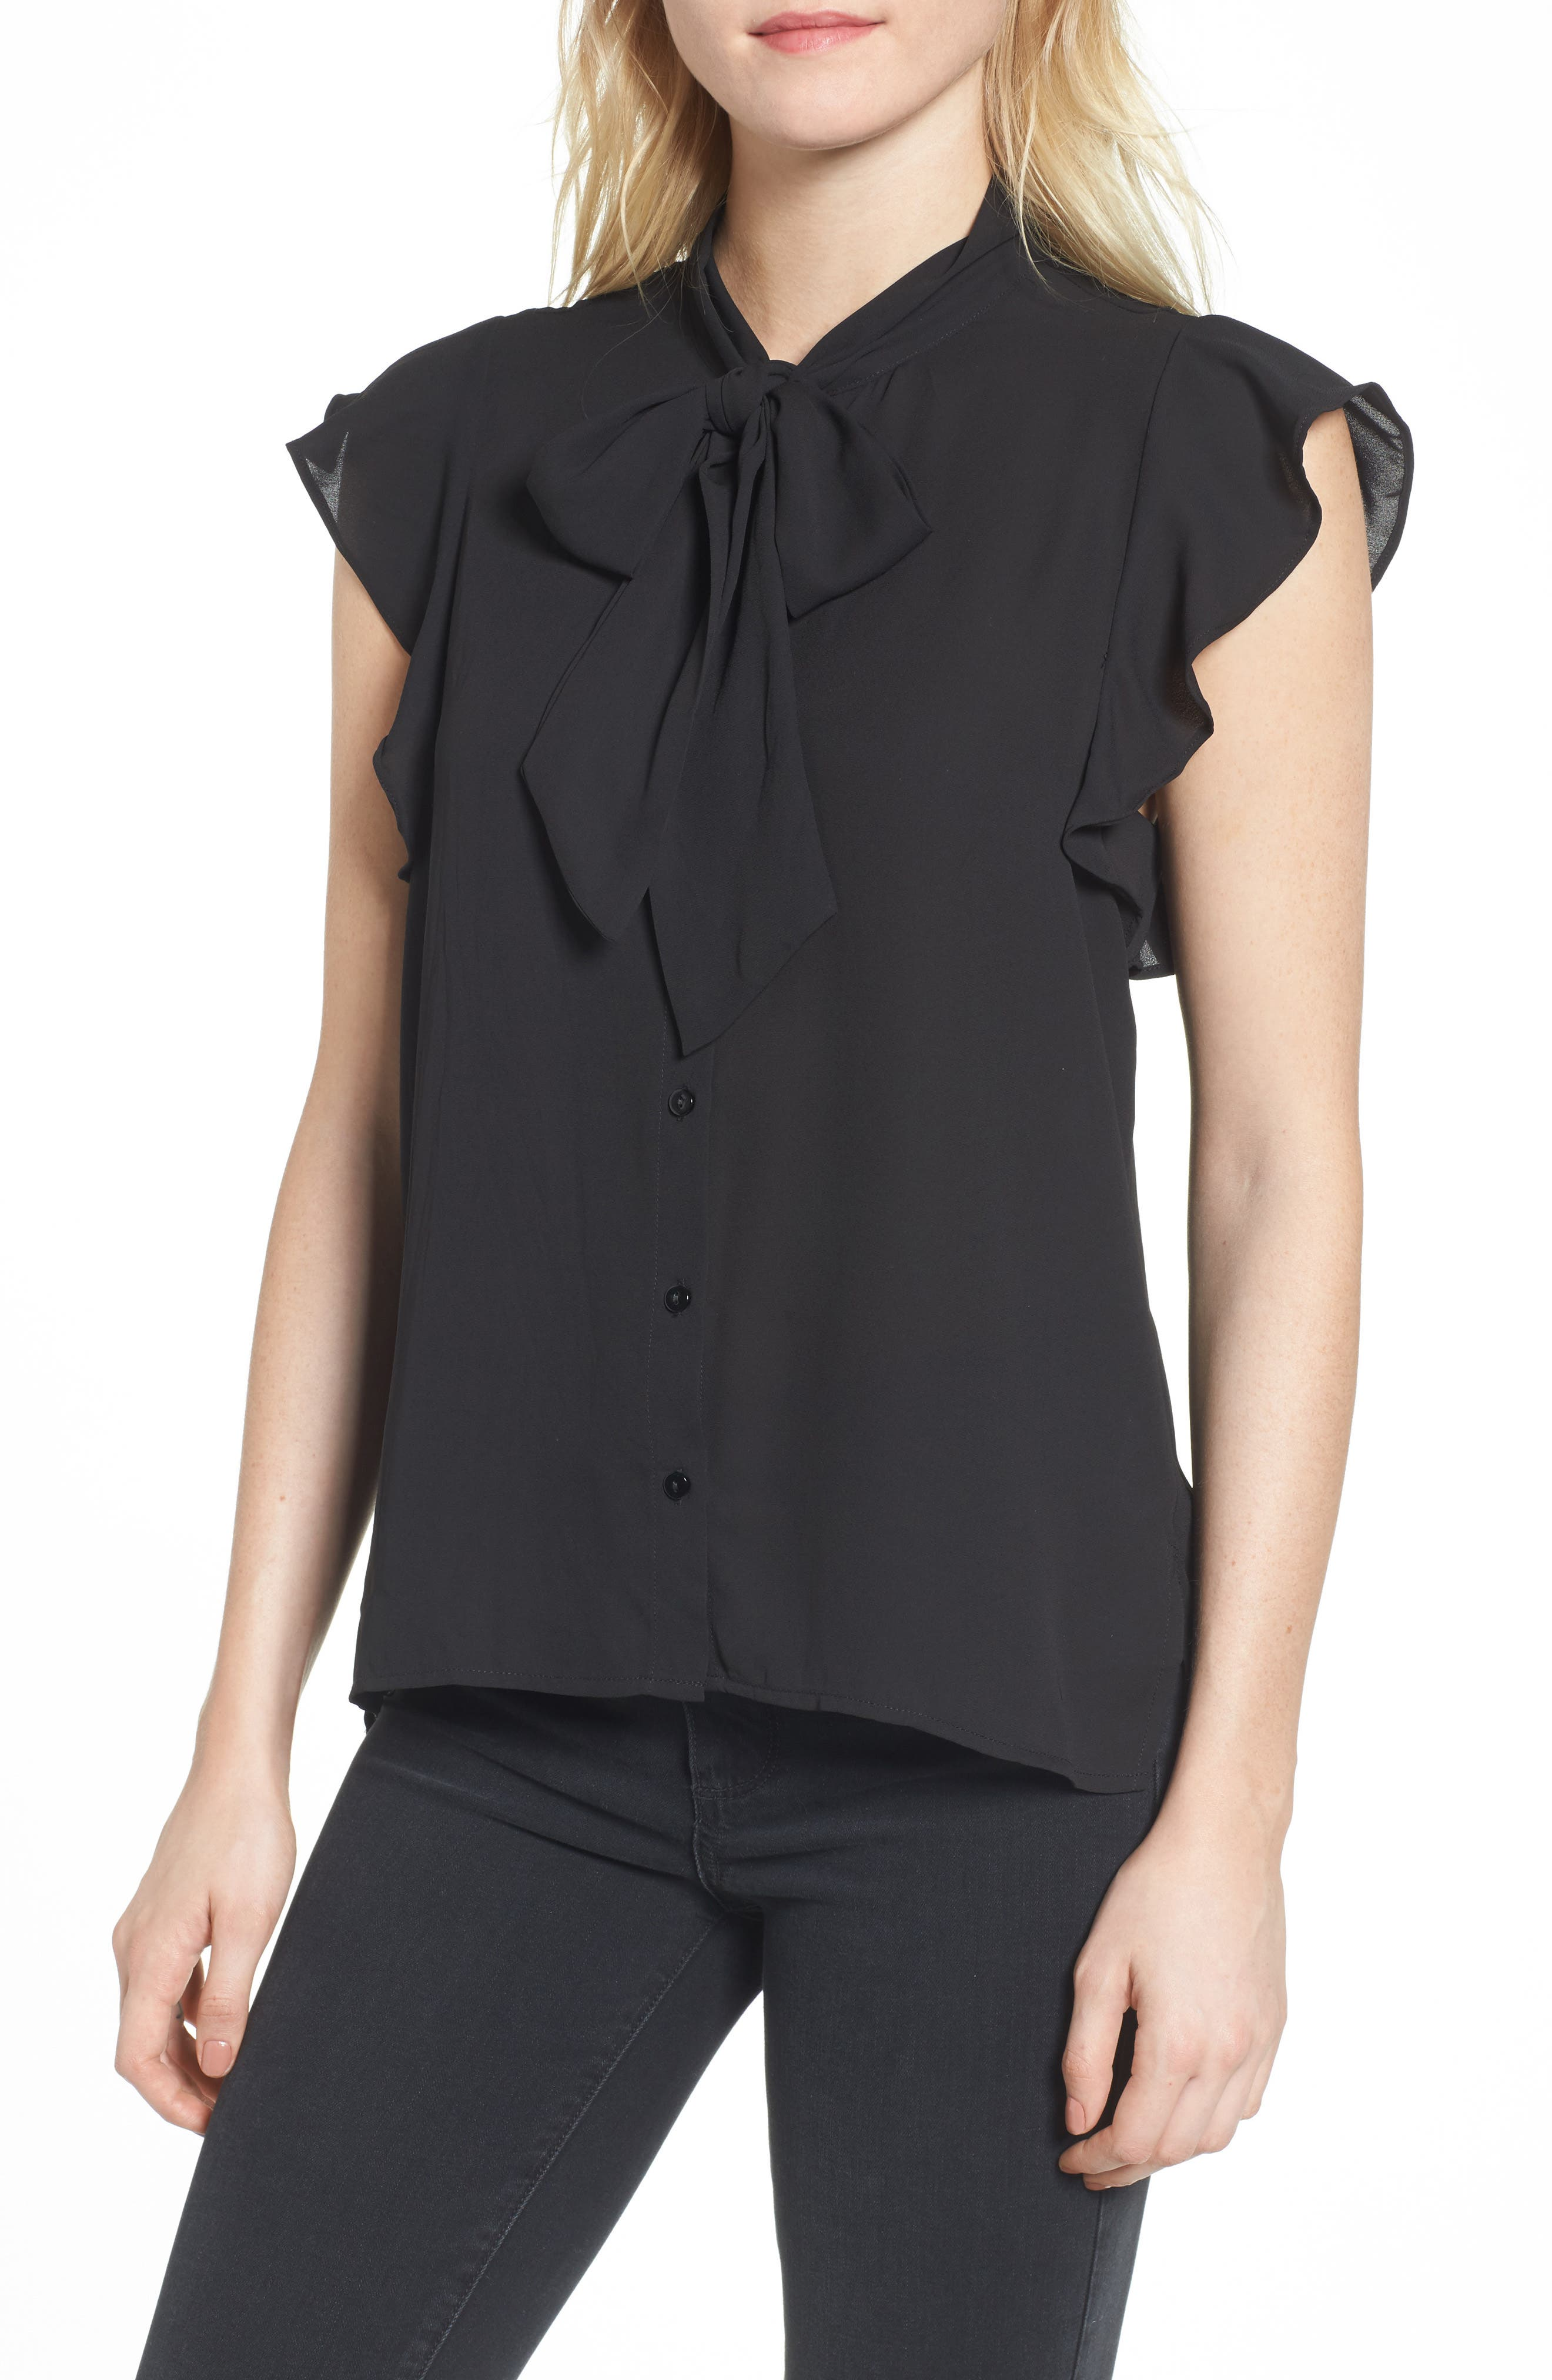 Bishop + Young Ruffle Blouse,                         Main,                         color, Black